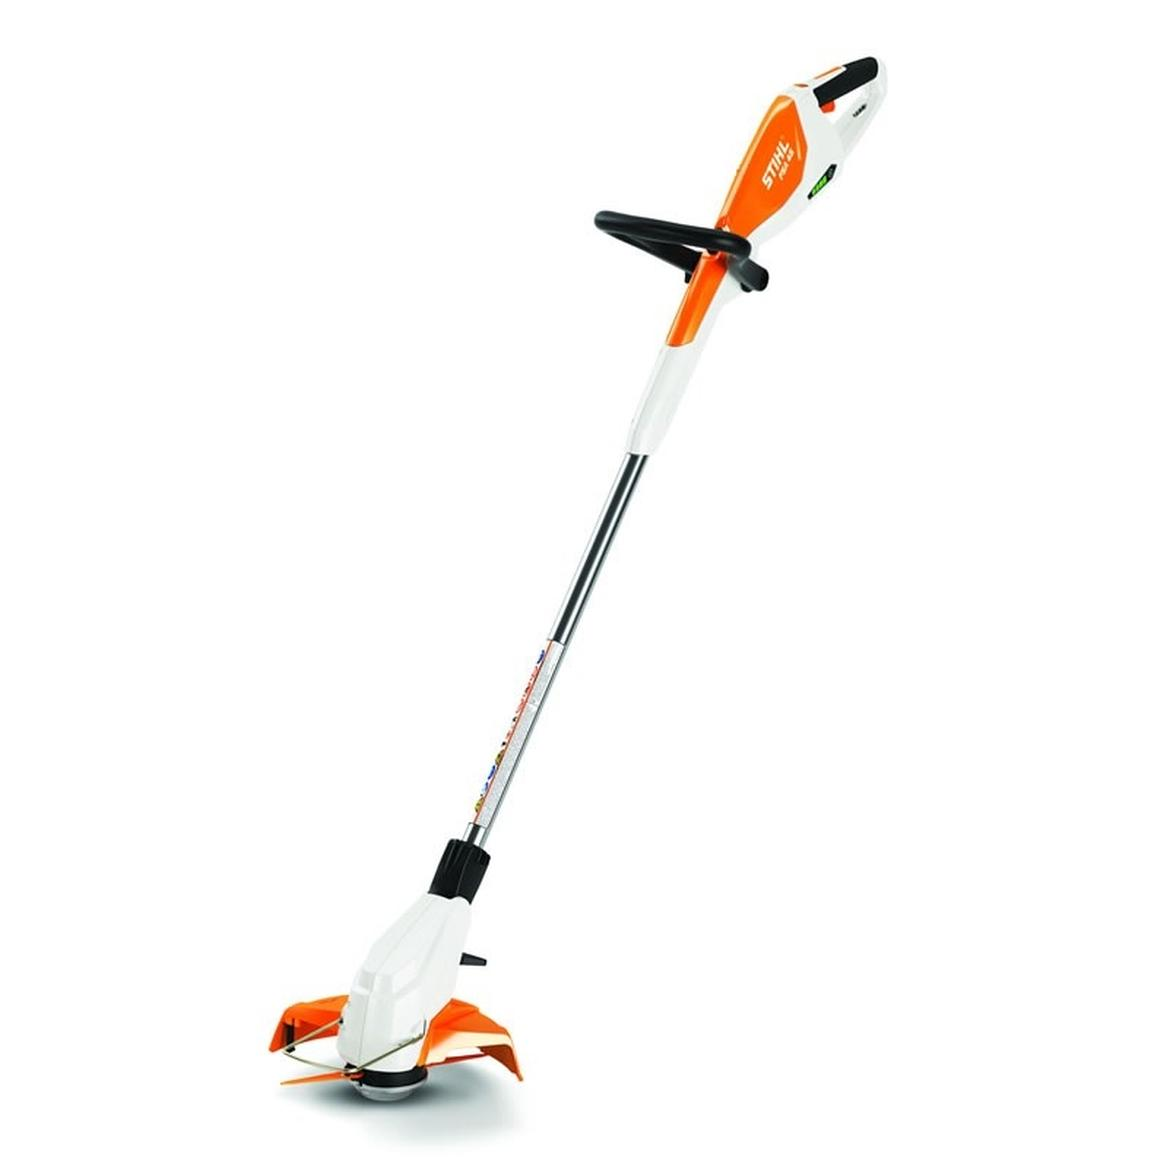 stihl fsa 45 cordless strimmer radmore tucker. Black Bedroom Furniture Sets. Home Design Ideas